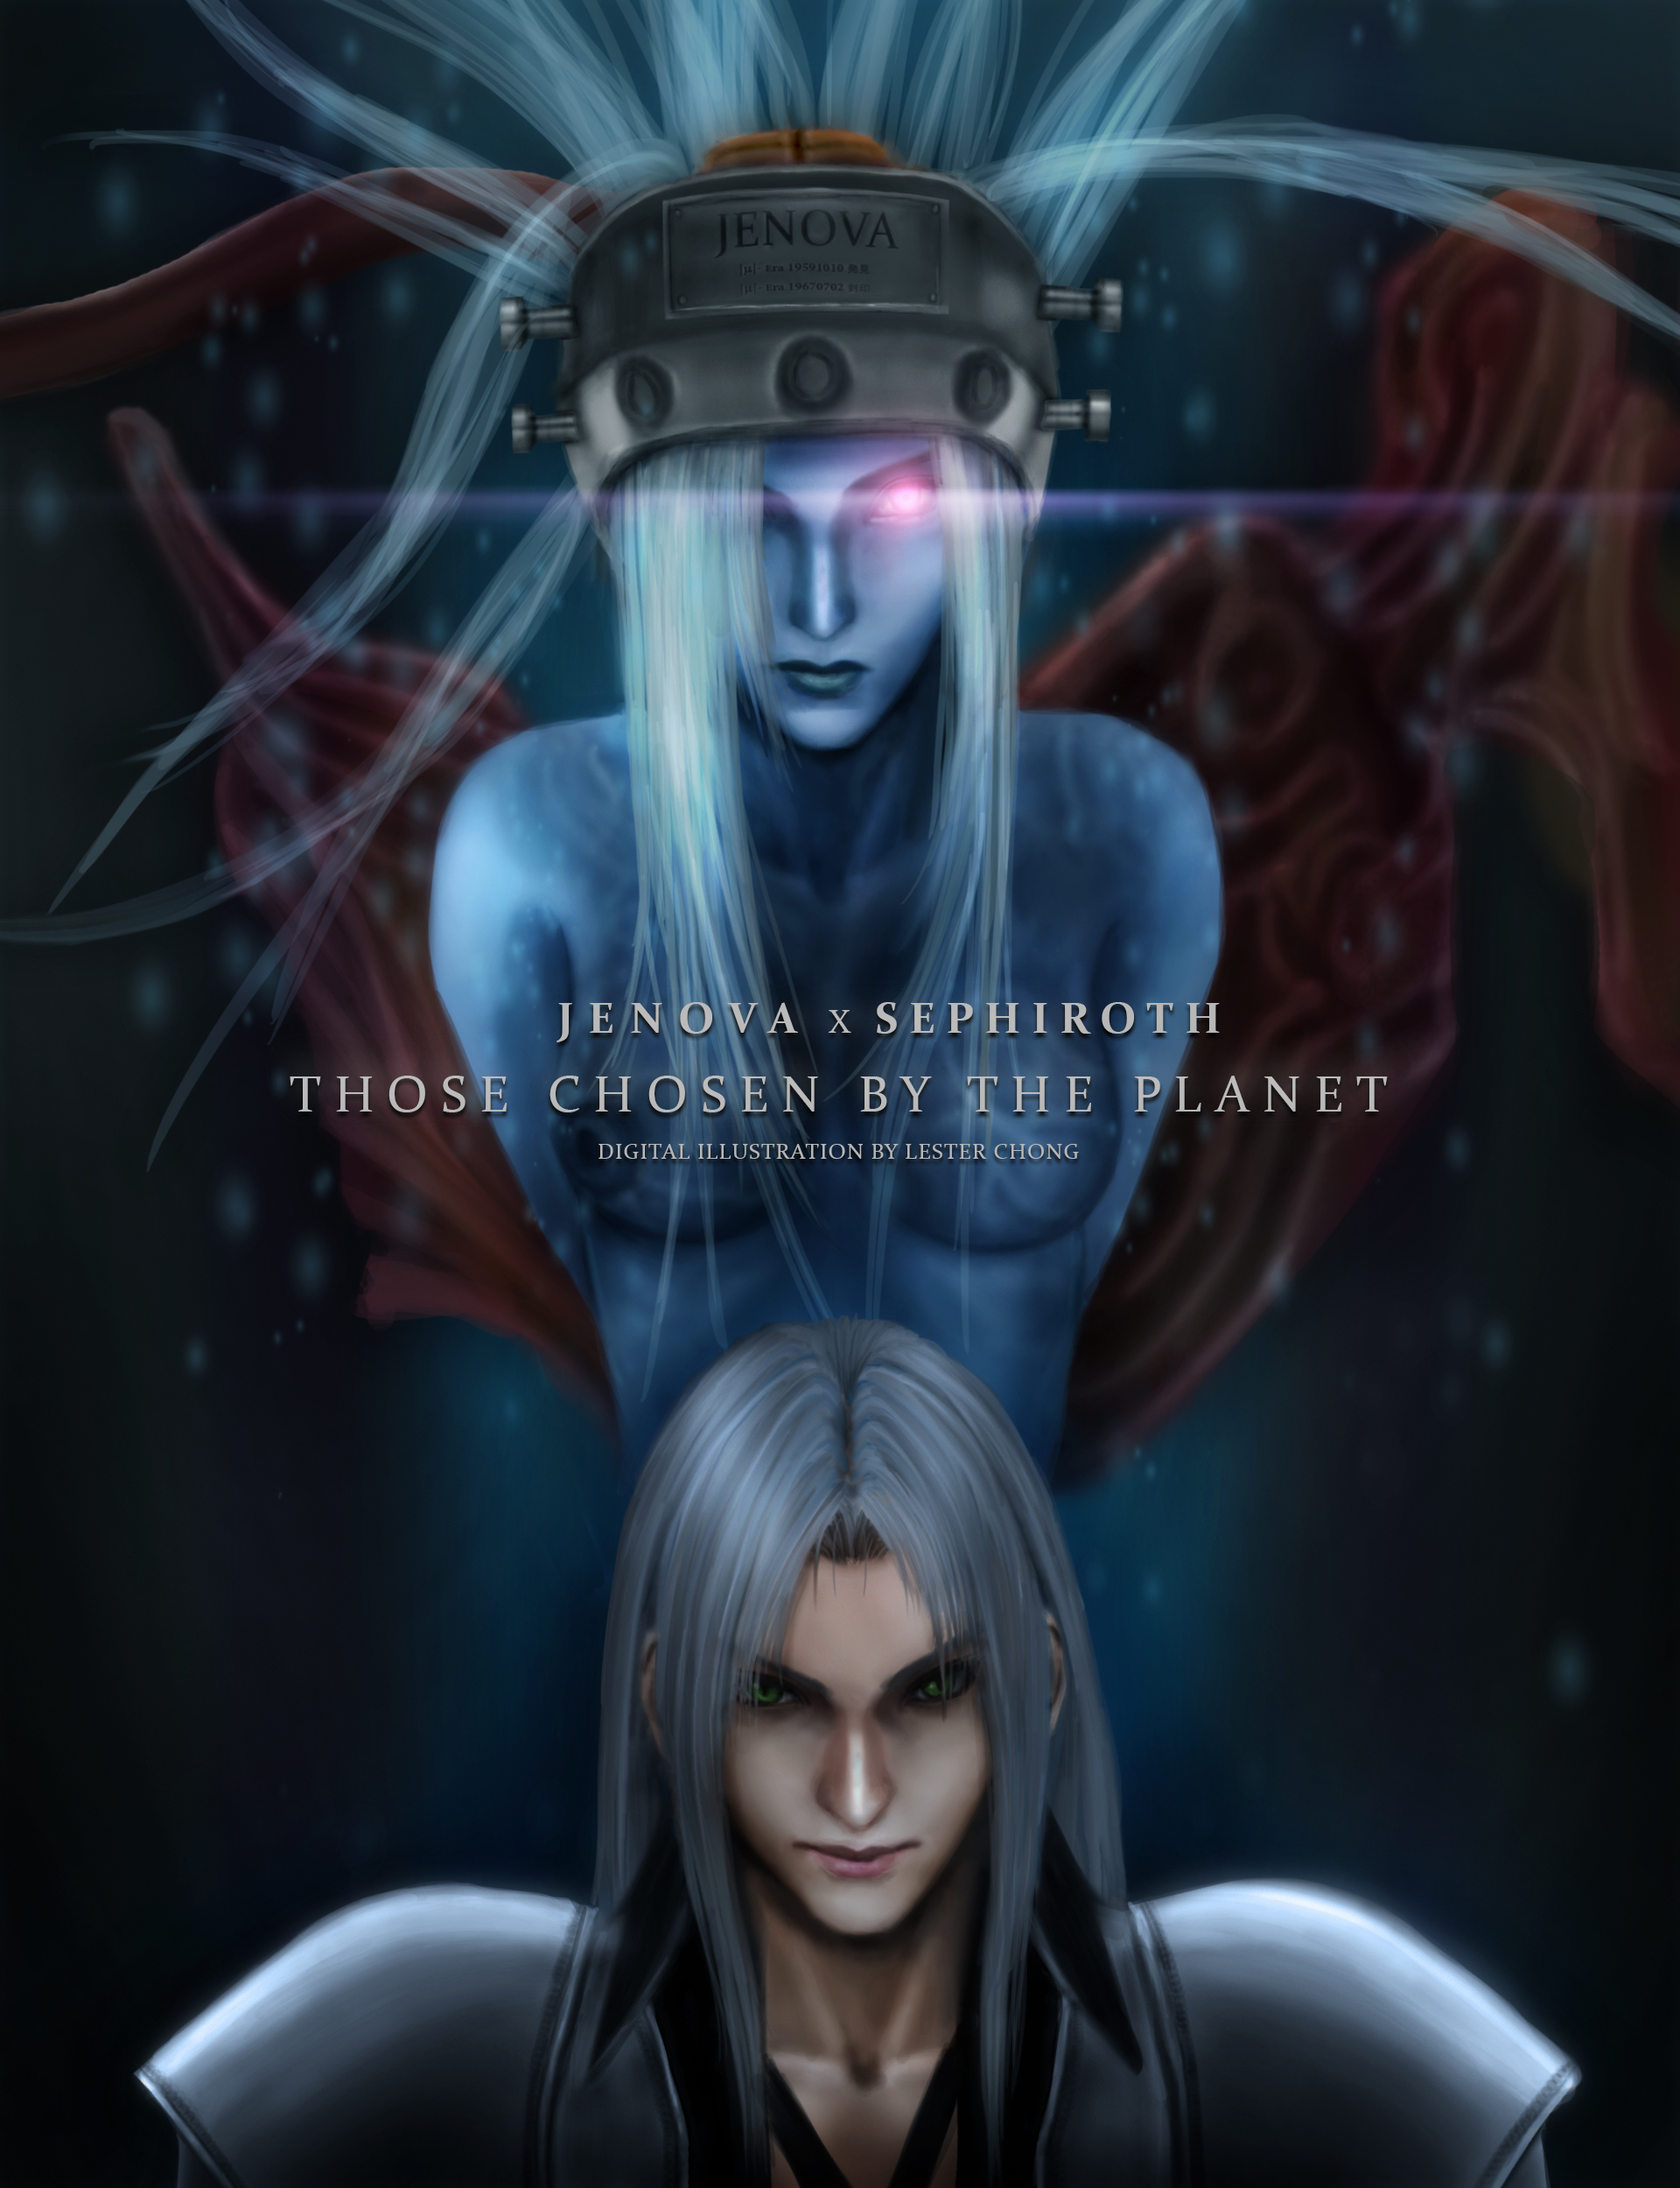 Final Fantasy Vii Remake Jenova X Sephiroth By Lyzeravern On Deviantart